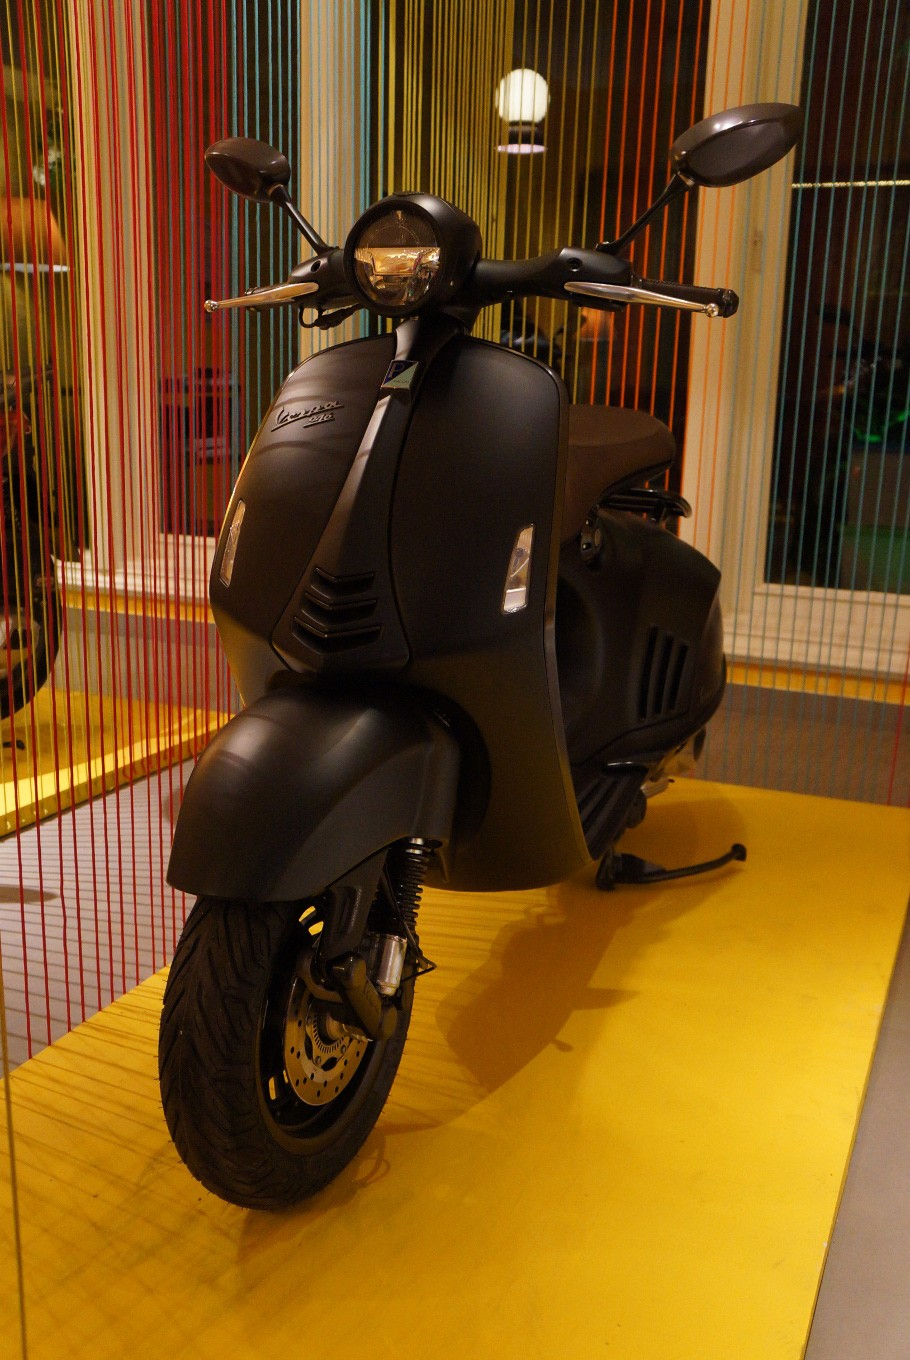 Piaggio to revive the hype of Vespa once again